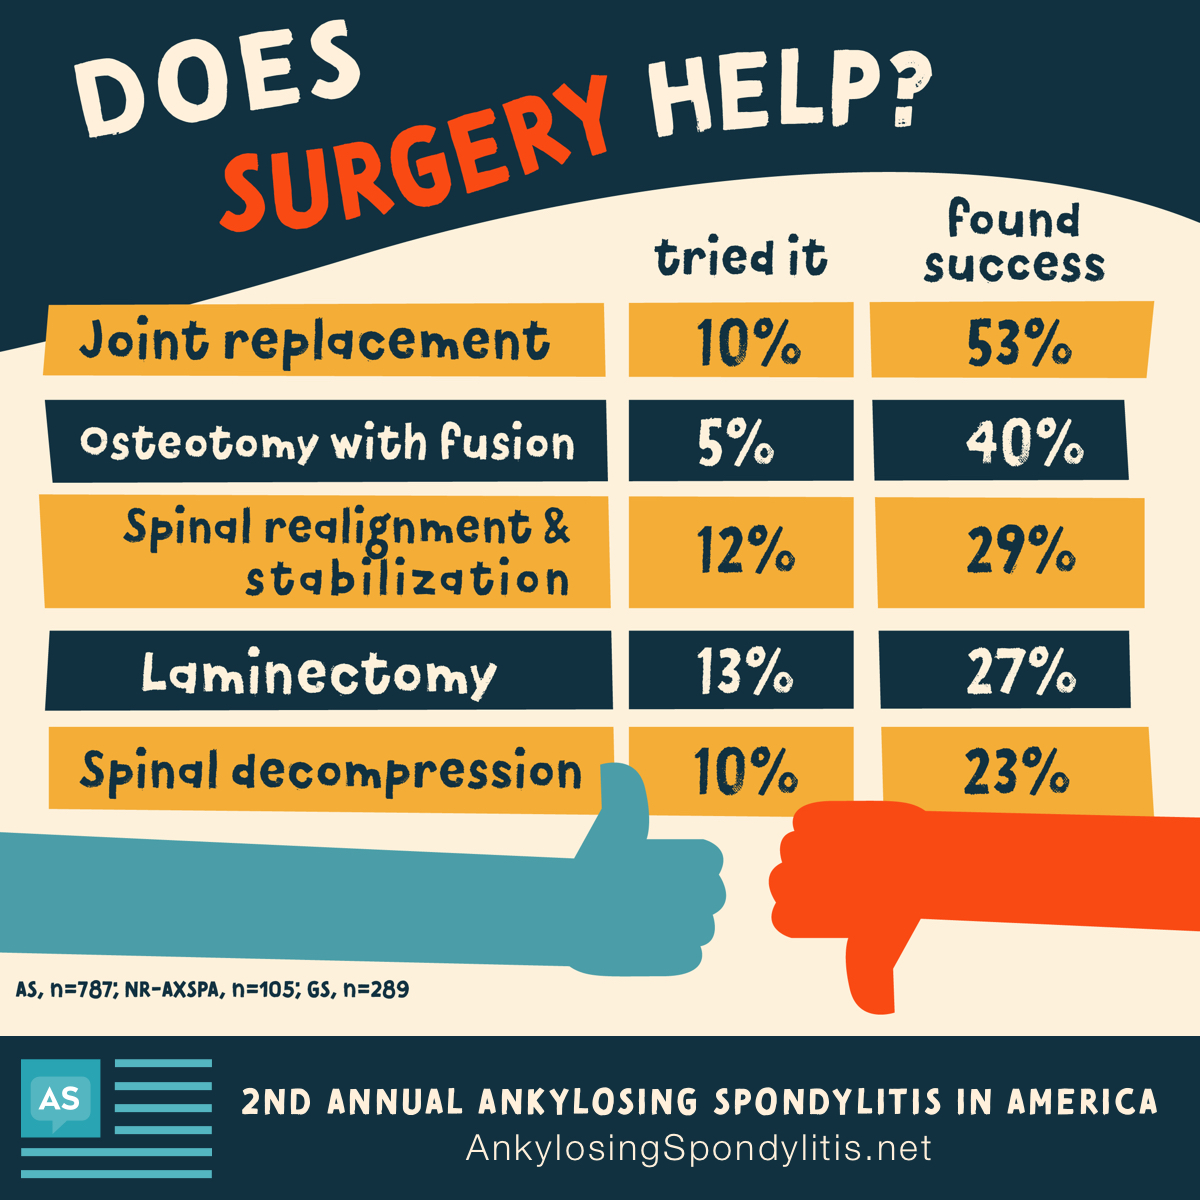 Chart showing that 53% of people found joint replacement surgery successful, 40% found osteotomy with fusion successful.